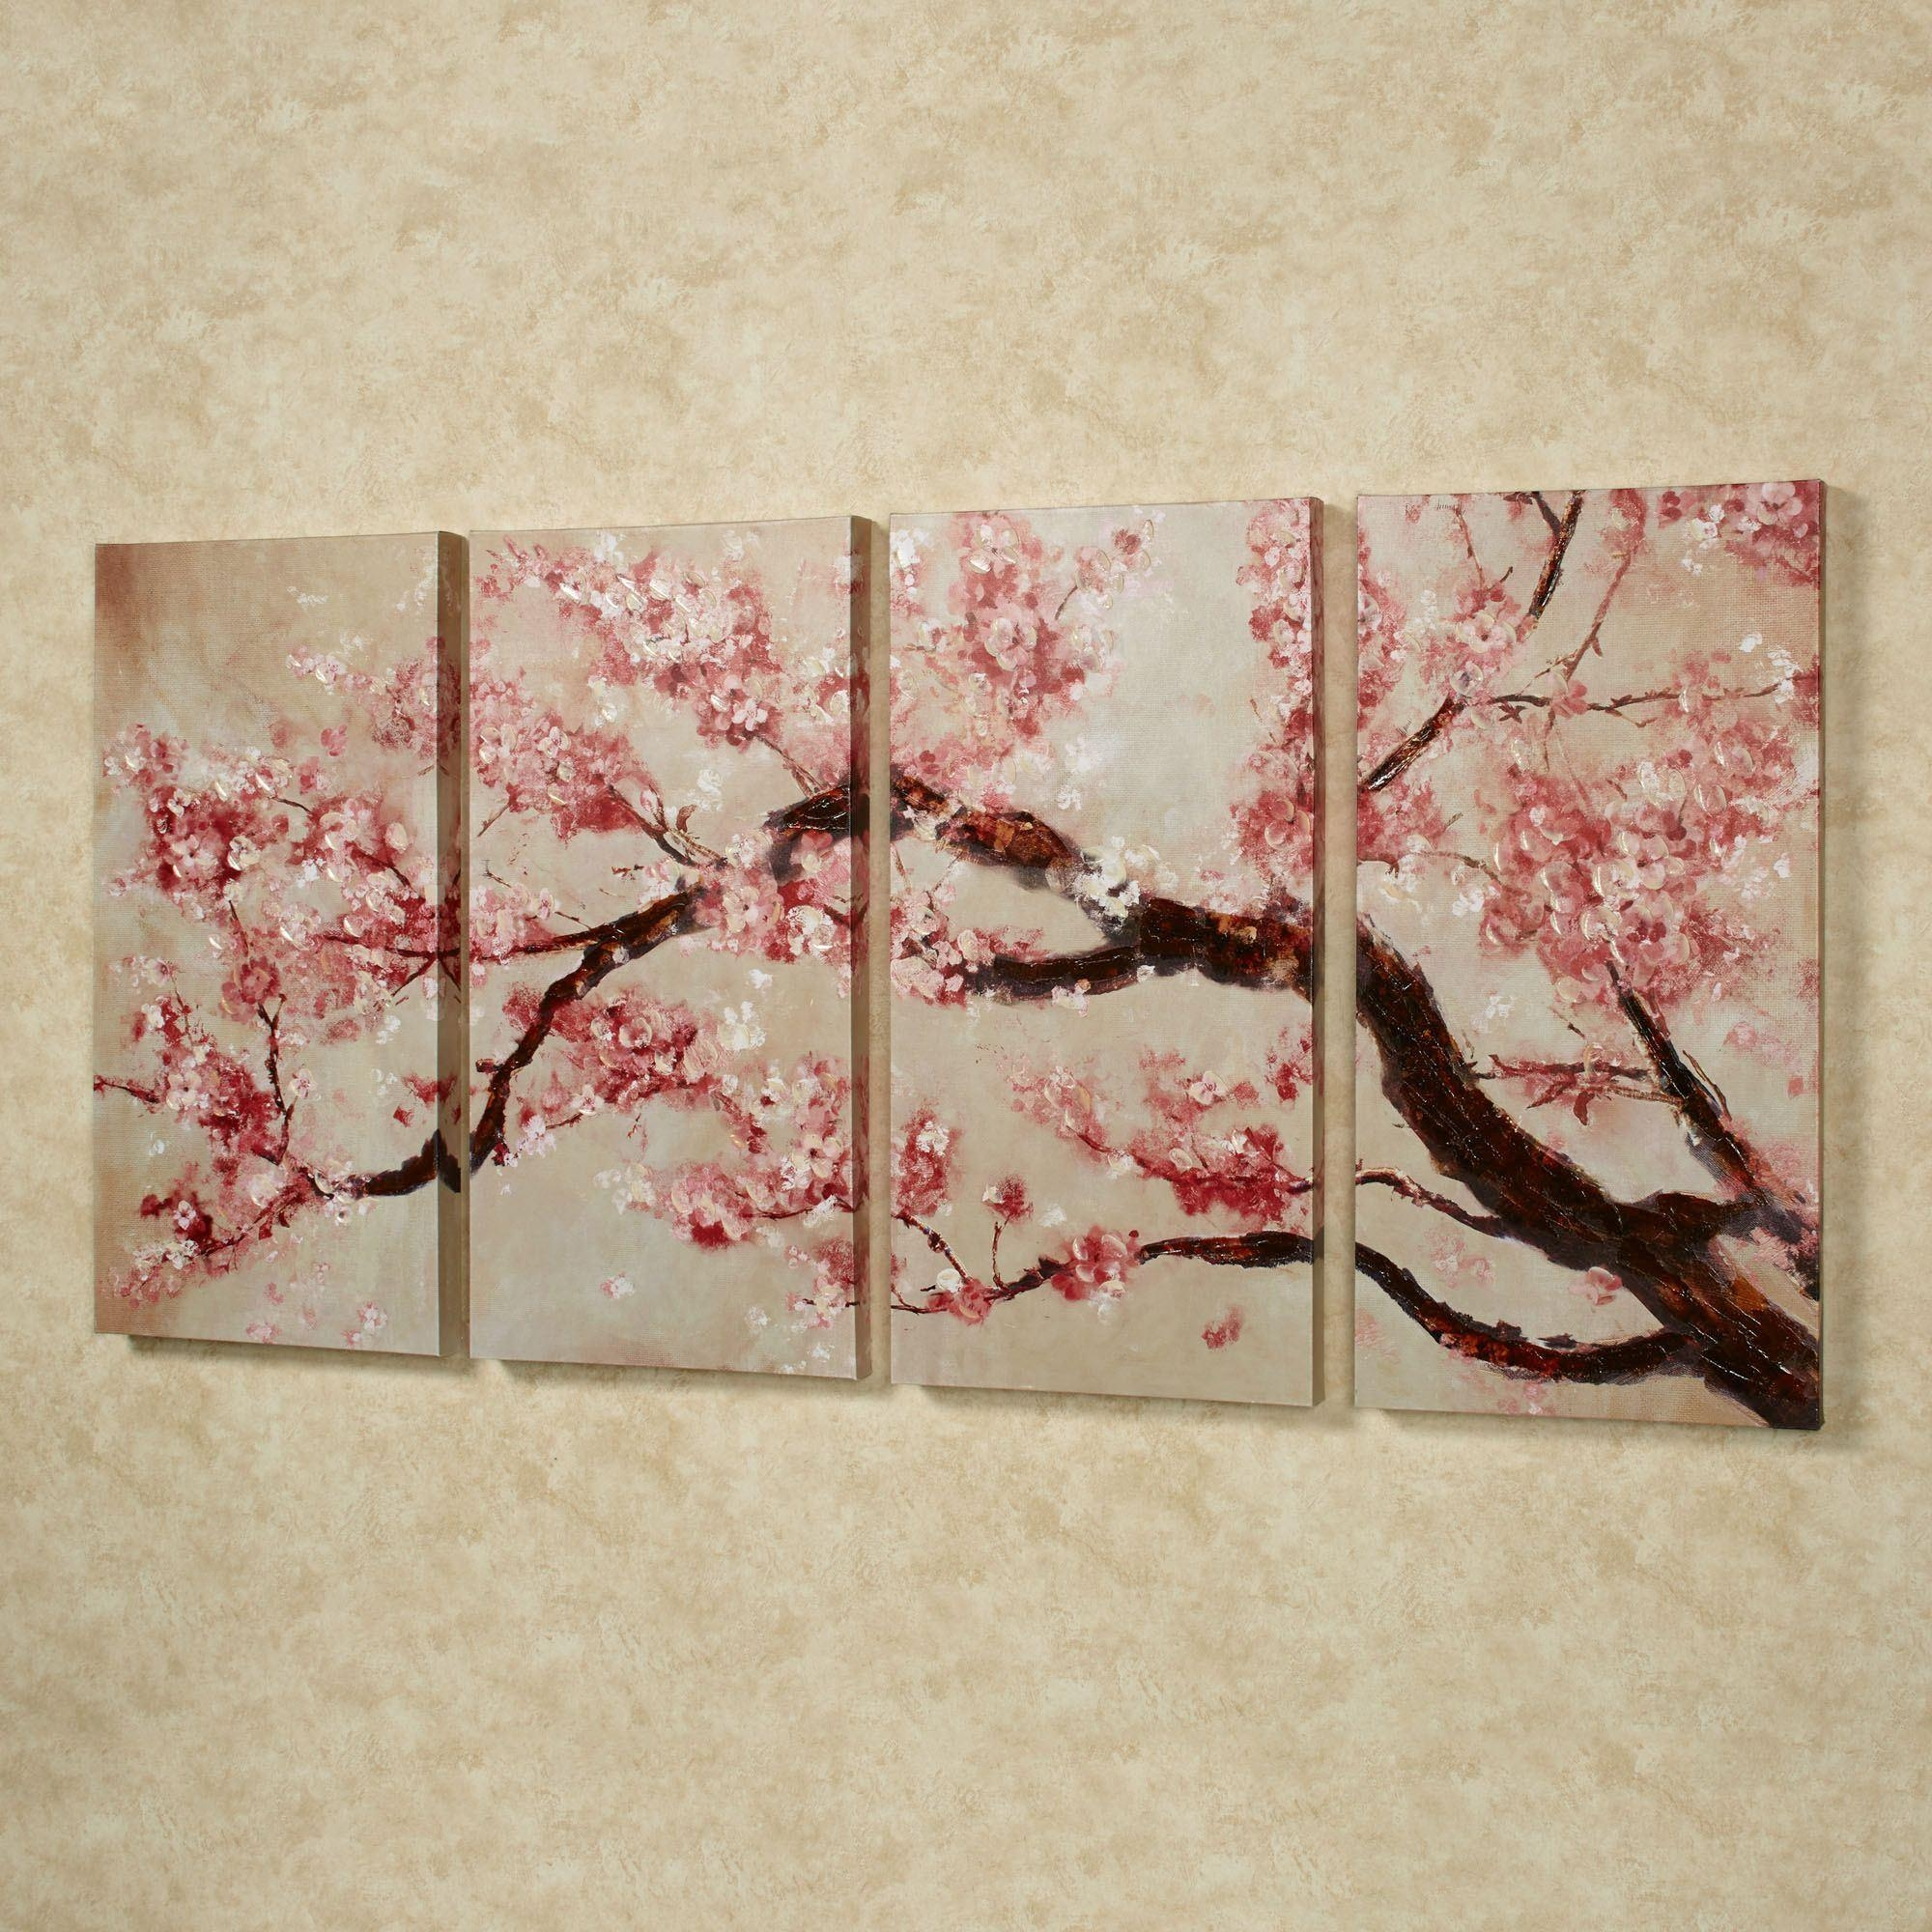 Floral And Botanical Canvas Wall Art | Touch Of Class Throughout Red Cherry Blossom Wall Art (View 20 of 20)